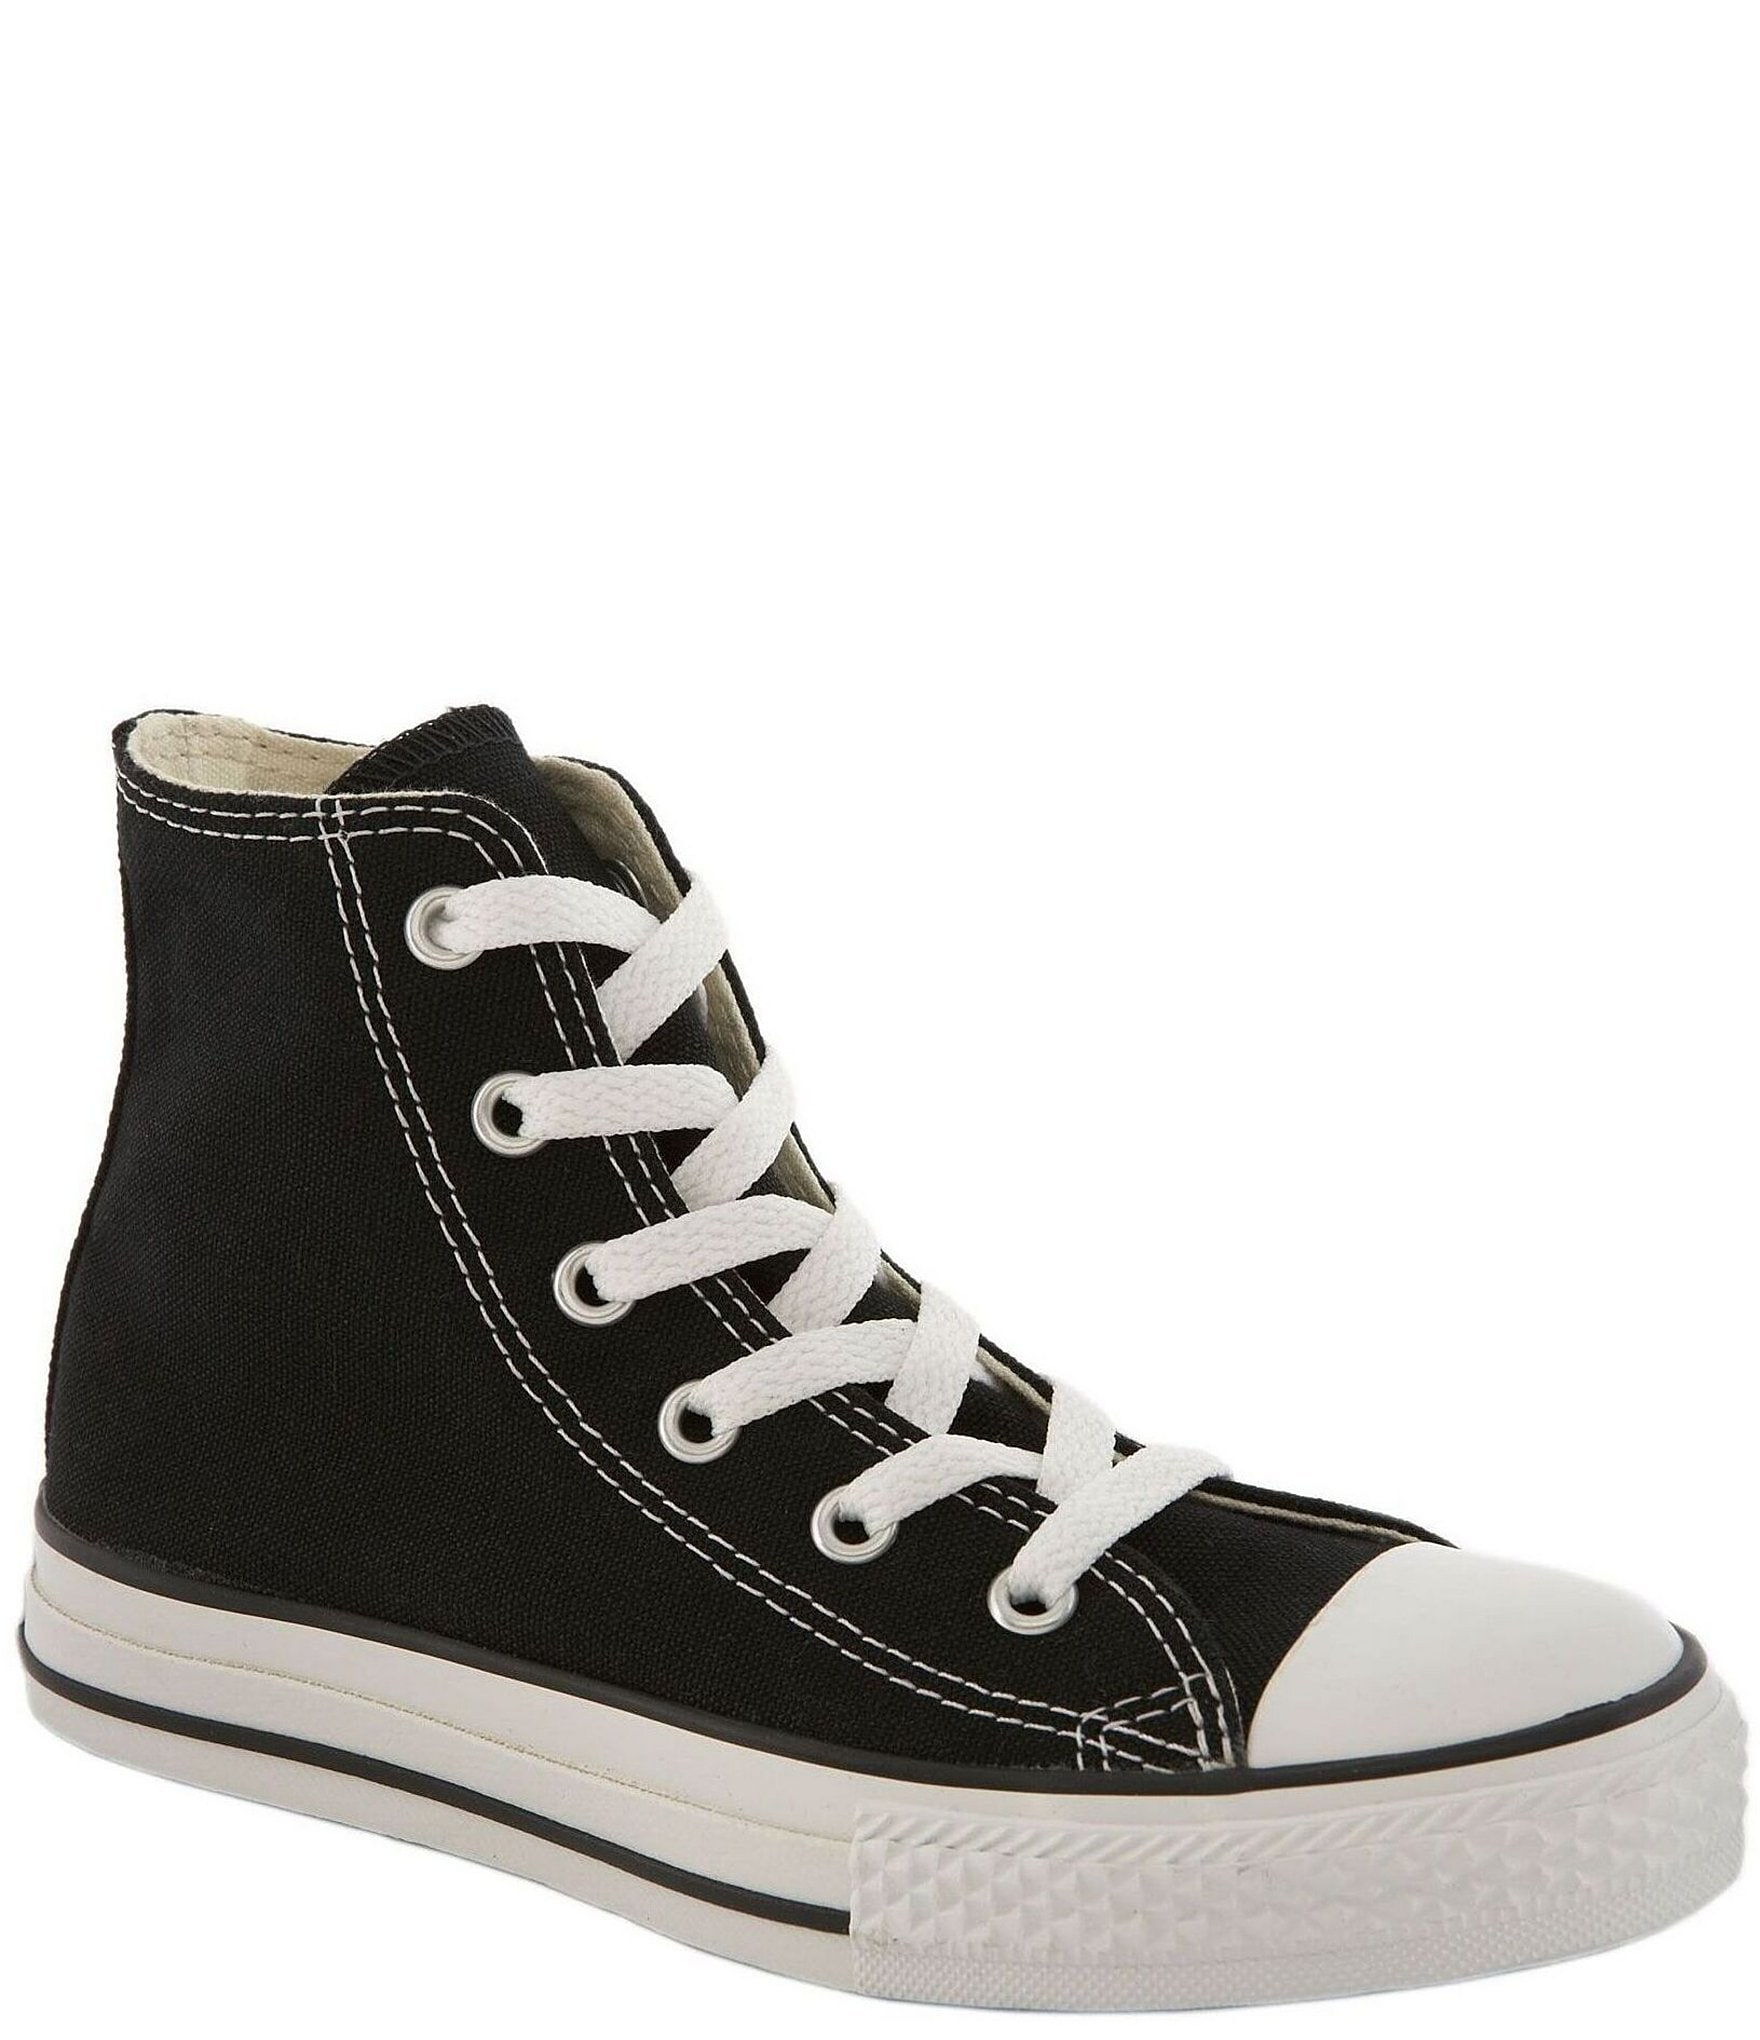 Jcpenney Shoes Converse Black